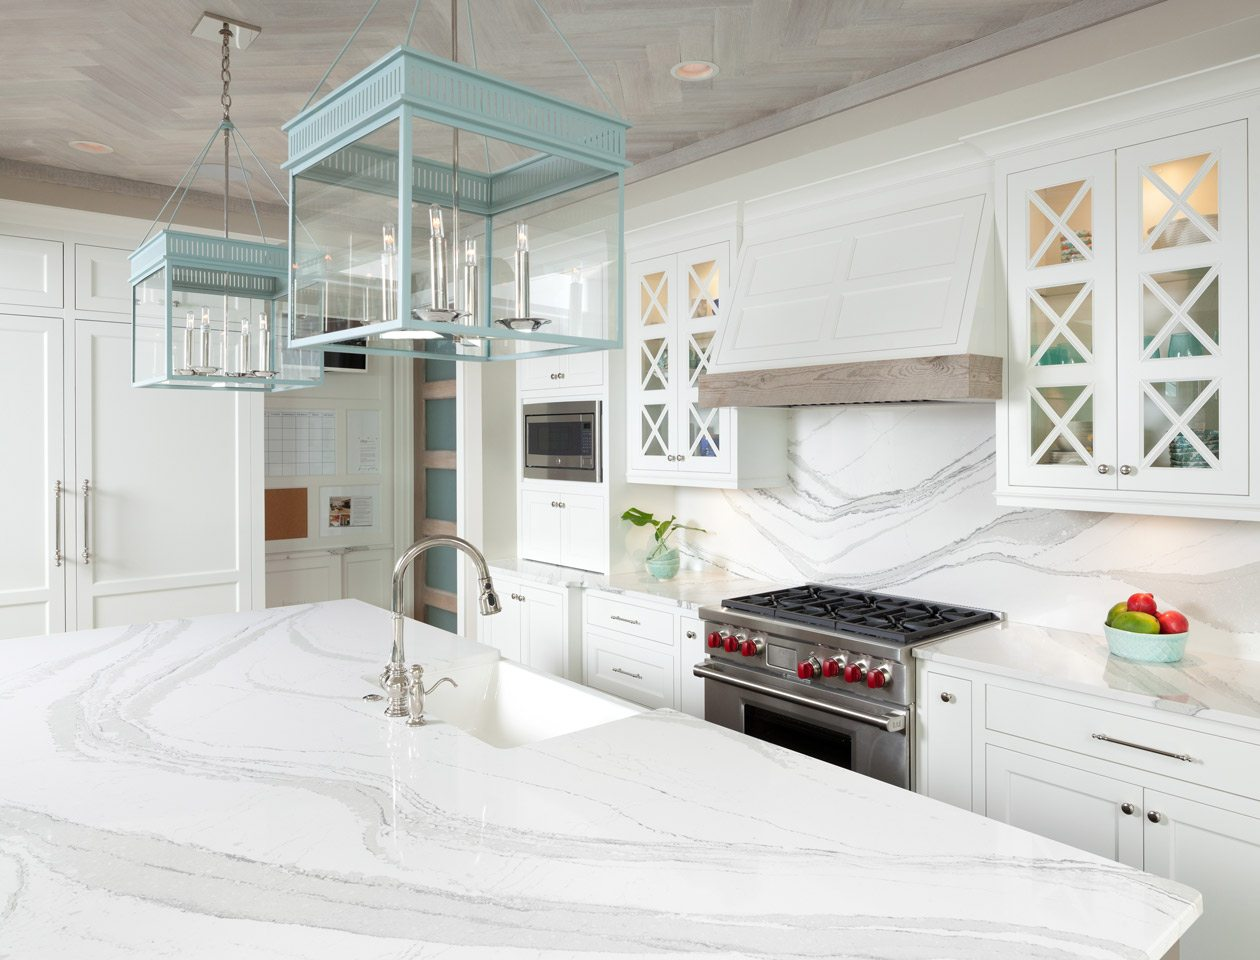 white kitchen with green lighting fixtures